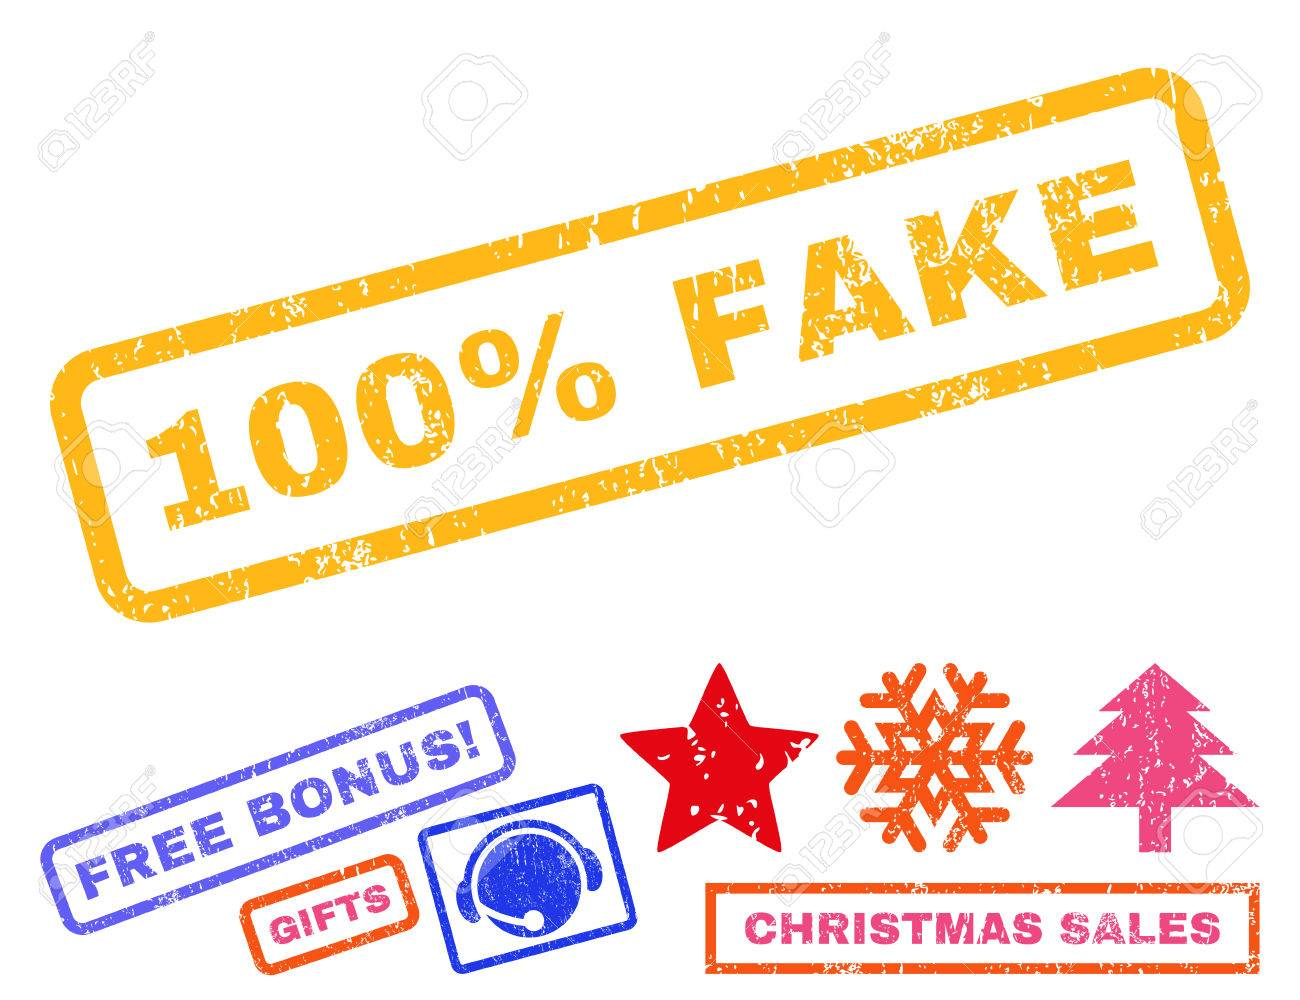 100 percent fake text rubber seal stamp watermark with additional 100 percent fake text rubber seal stamp watermark with additional bonus christmas symbols tag inside buycottarizona Image collections